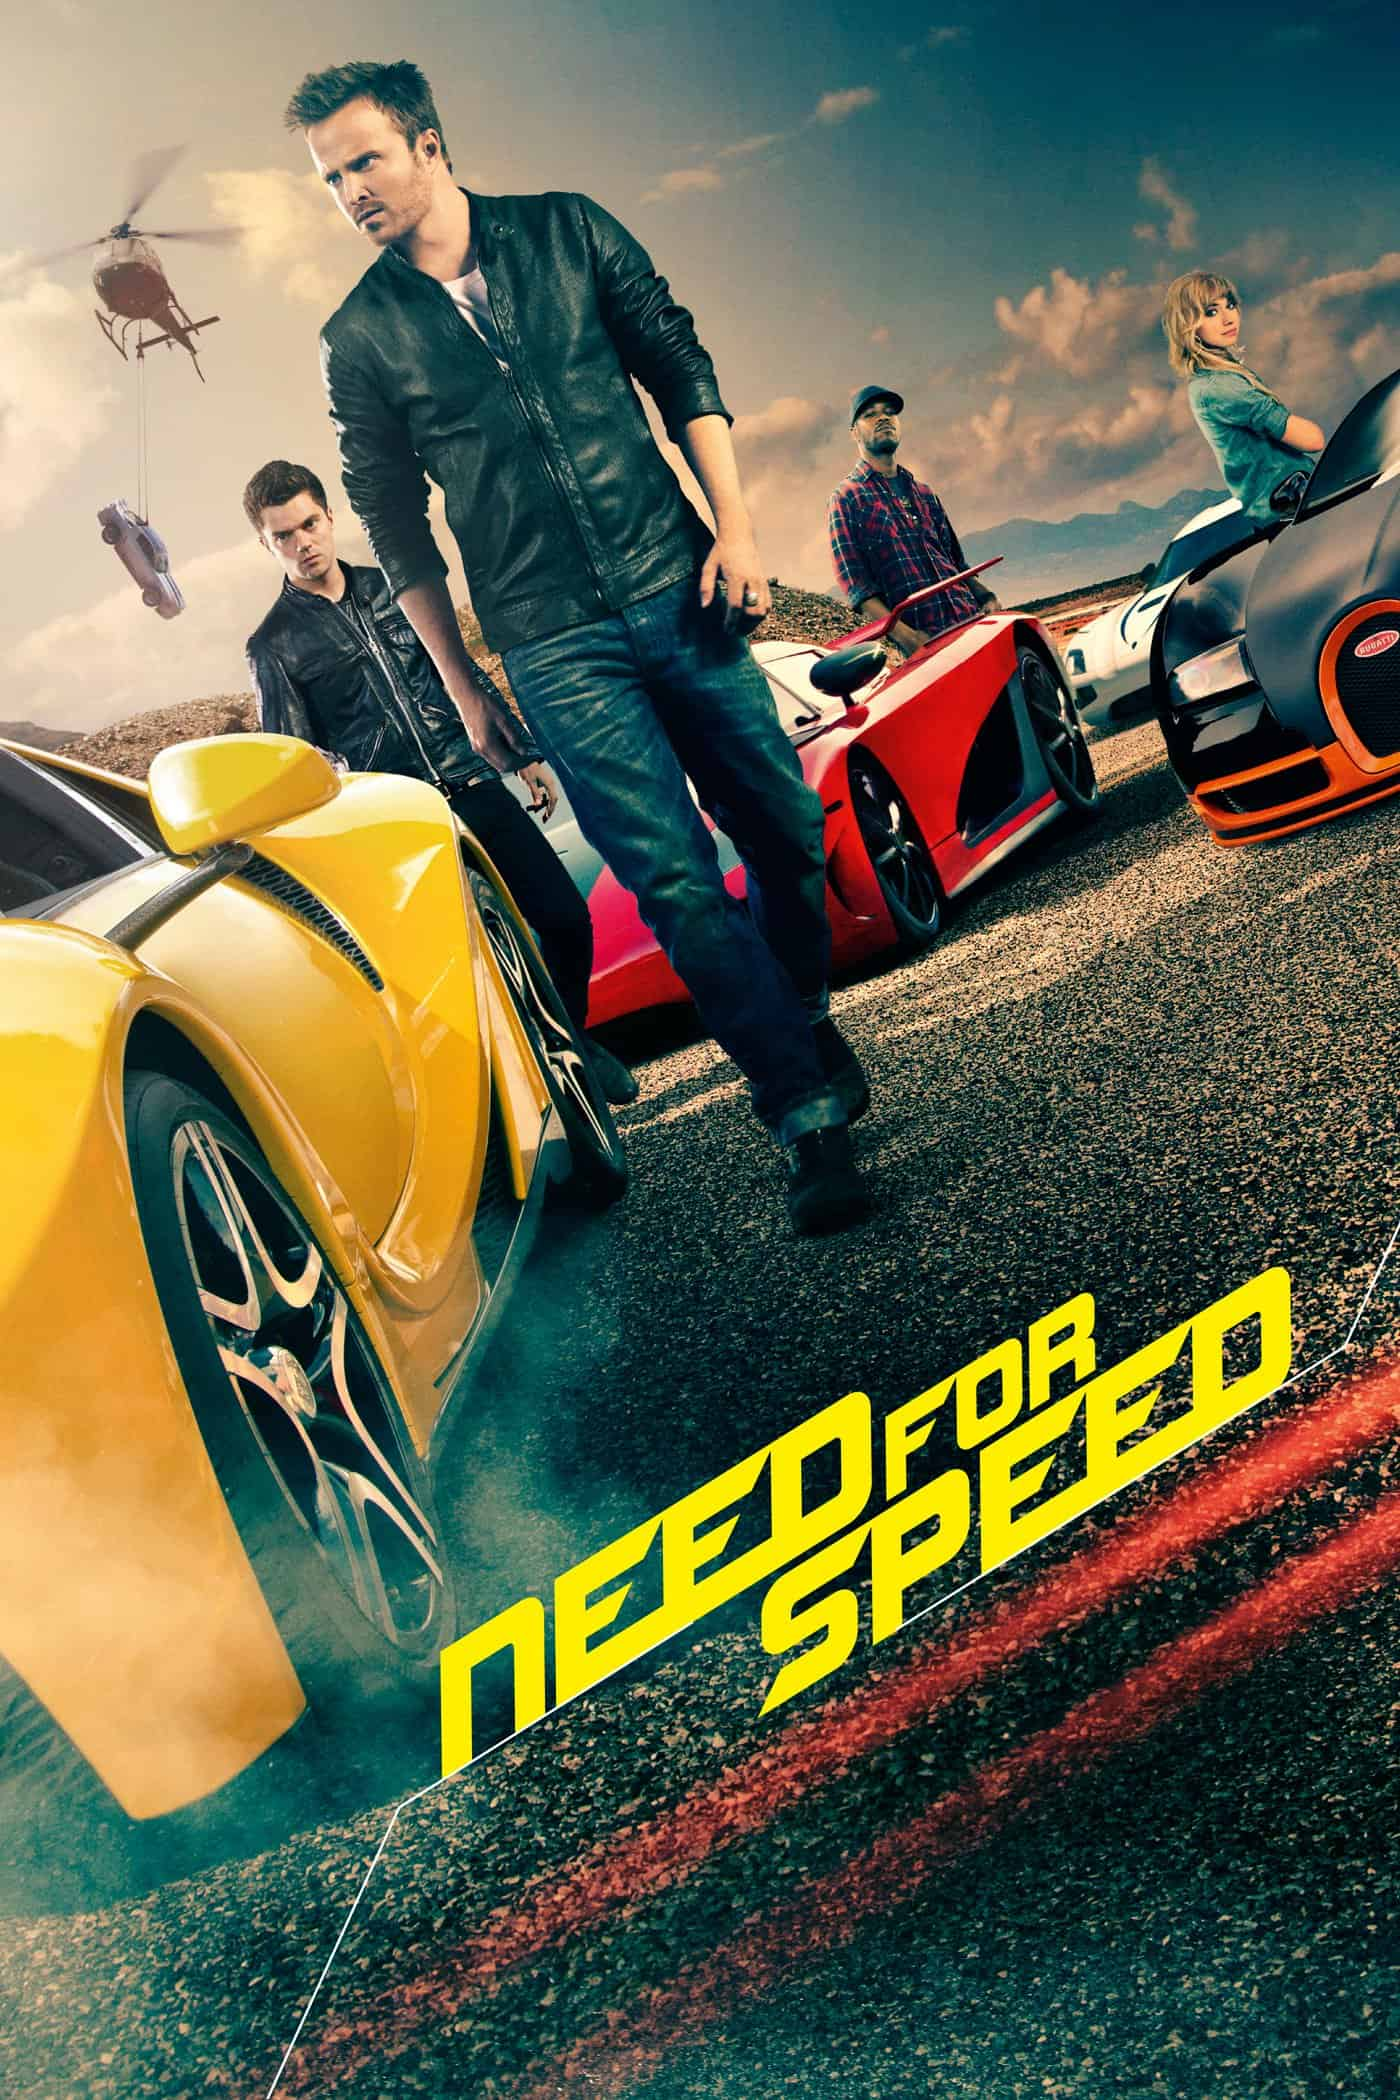 Need for Speed, 2014